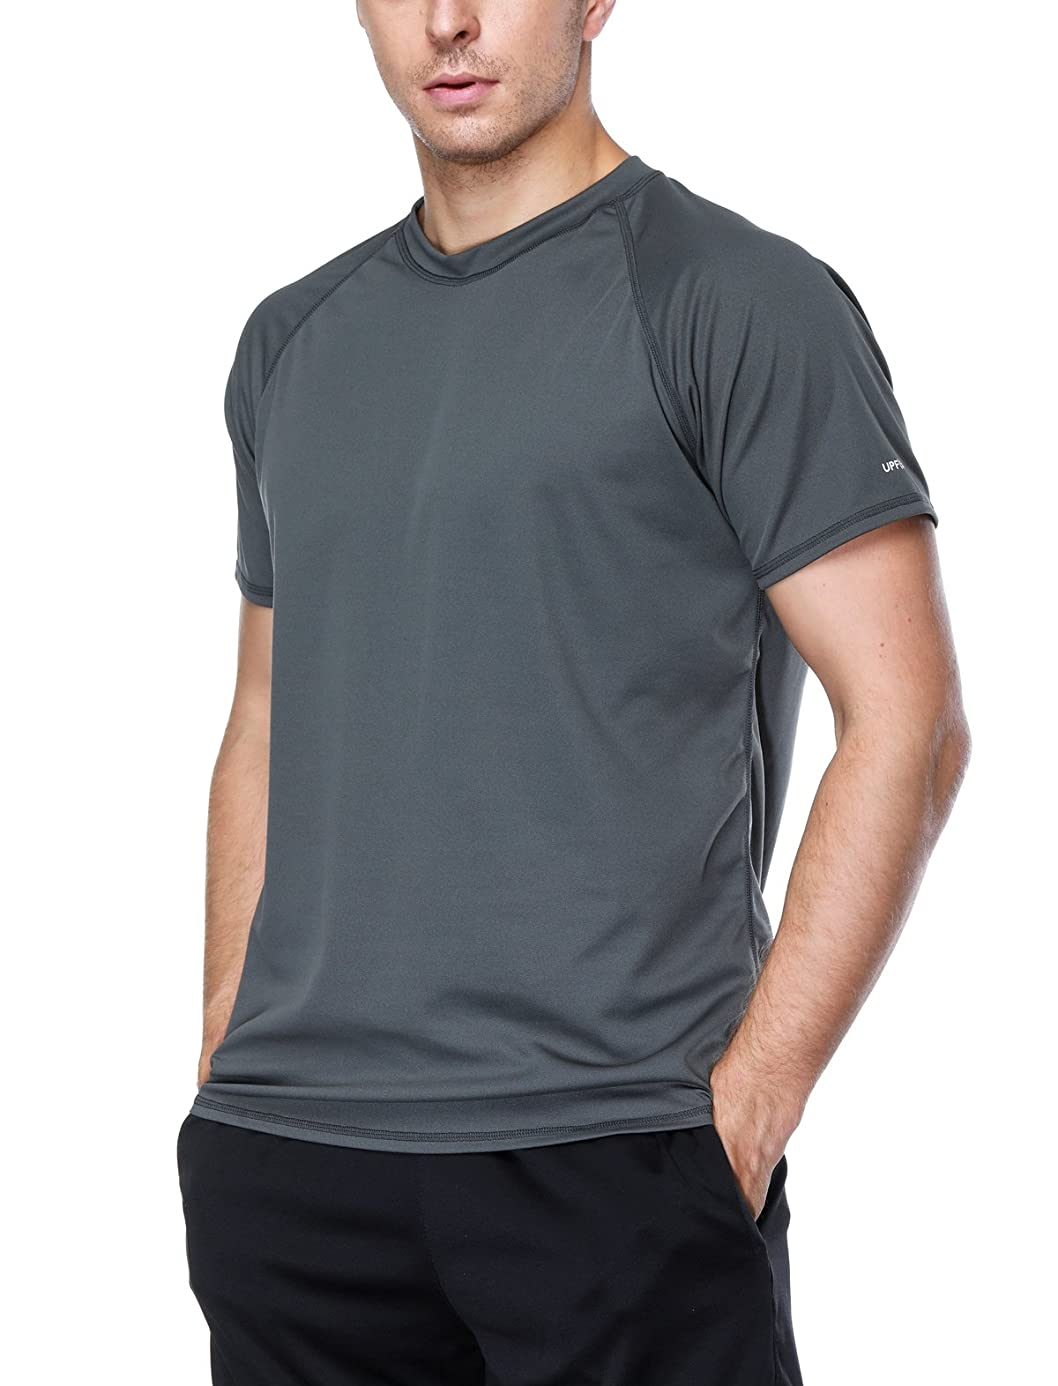 ATTRACO Men's Rashguard Swim Tee Short Sleeve Sun Protection Shirt Loose Fit